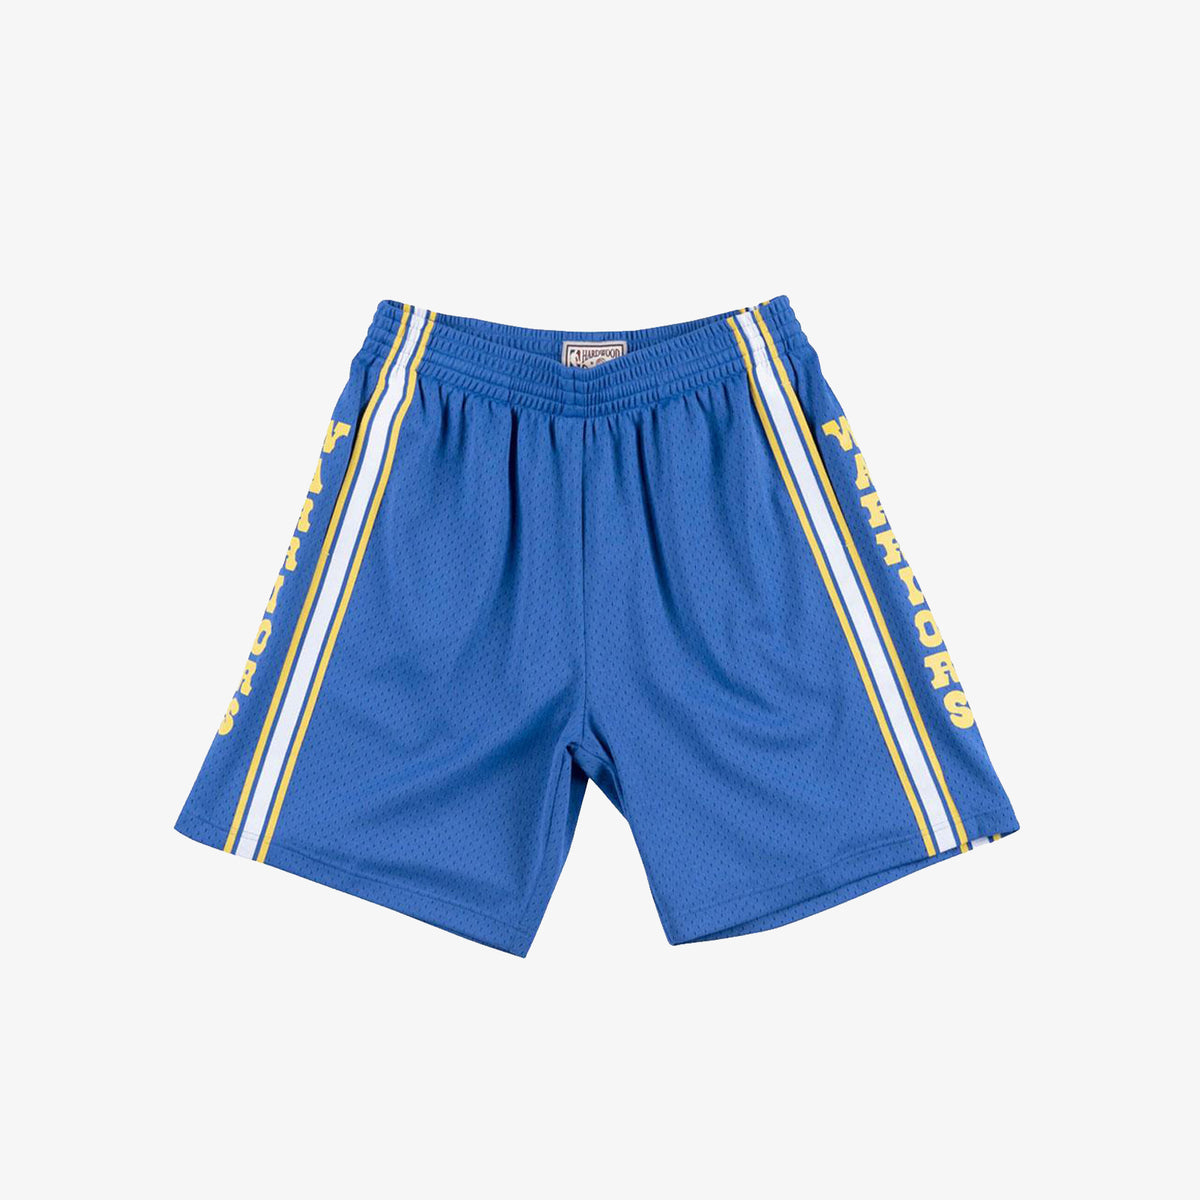 Golden State Warriors 81-82 HWC Swingman Shorts - Royal